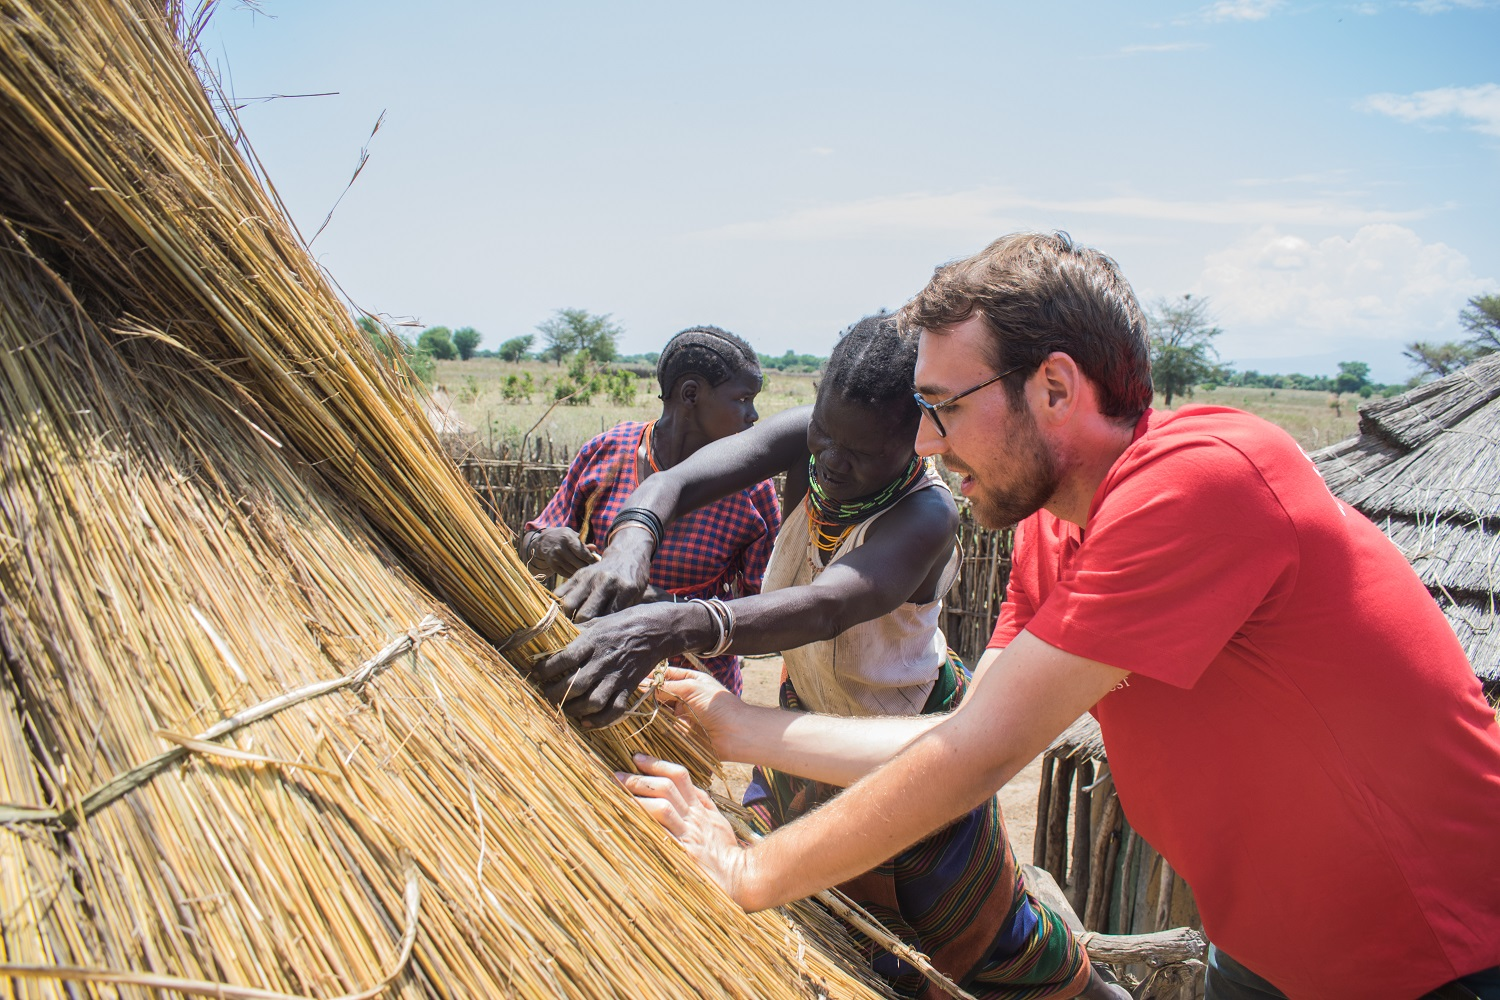 Thatching in Nakapiripirit